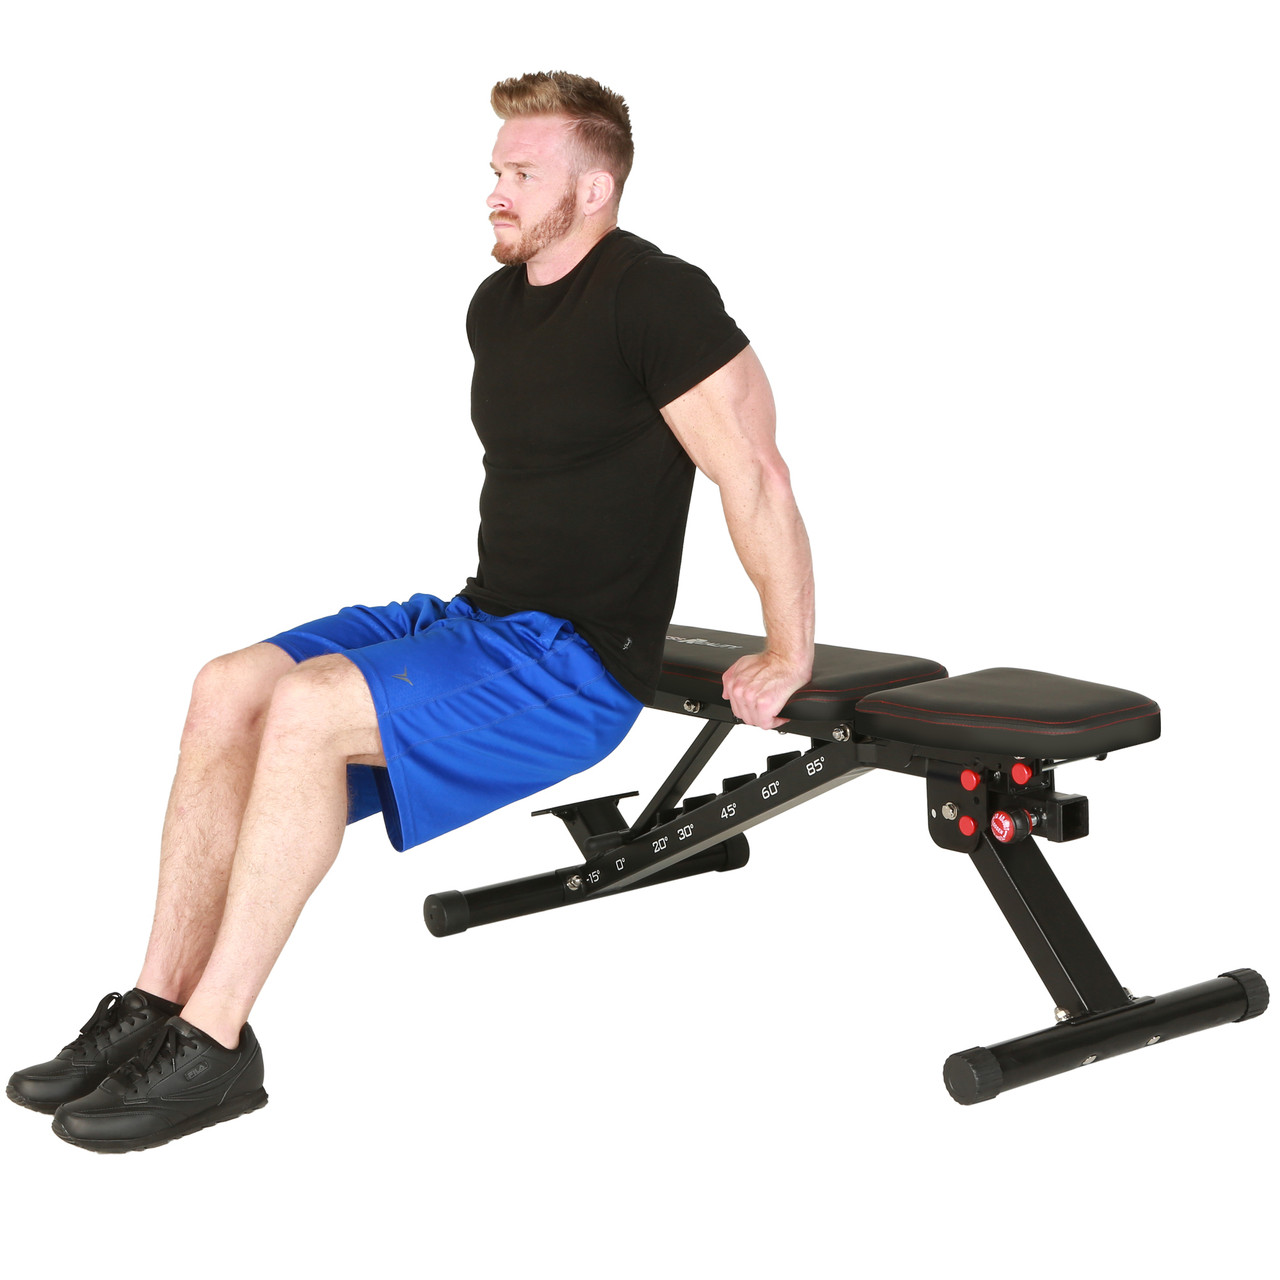 Fitness Reality 1000/Super Max Banc de Musculation